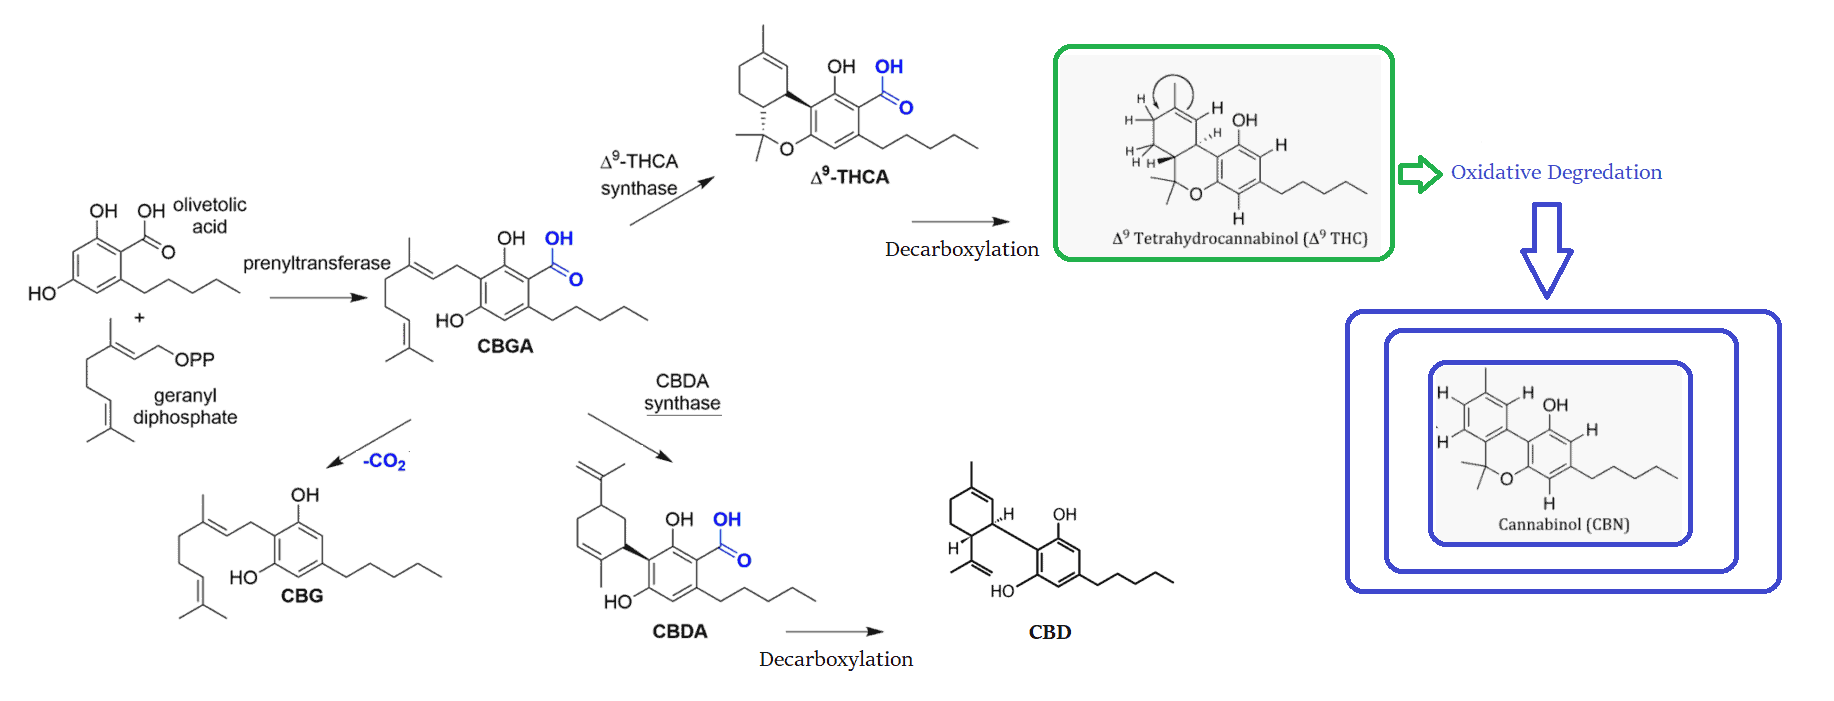 How cannabinoids are formed